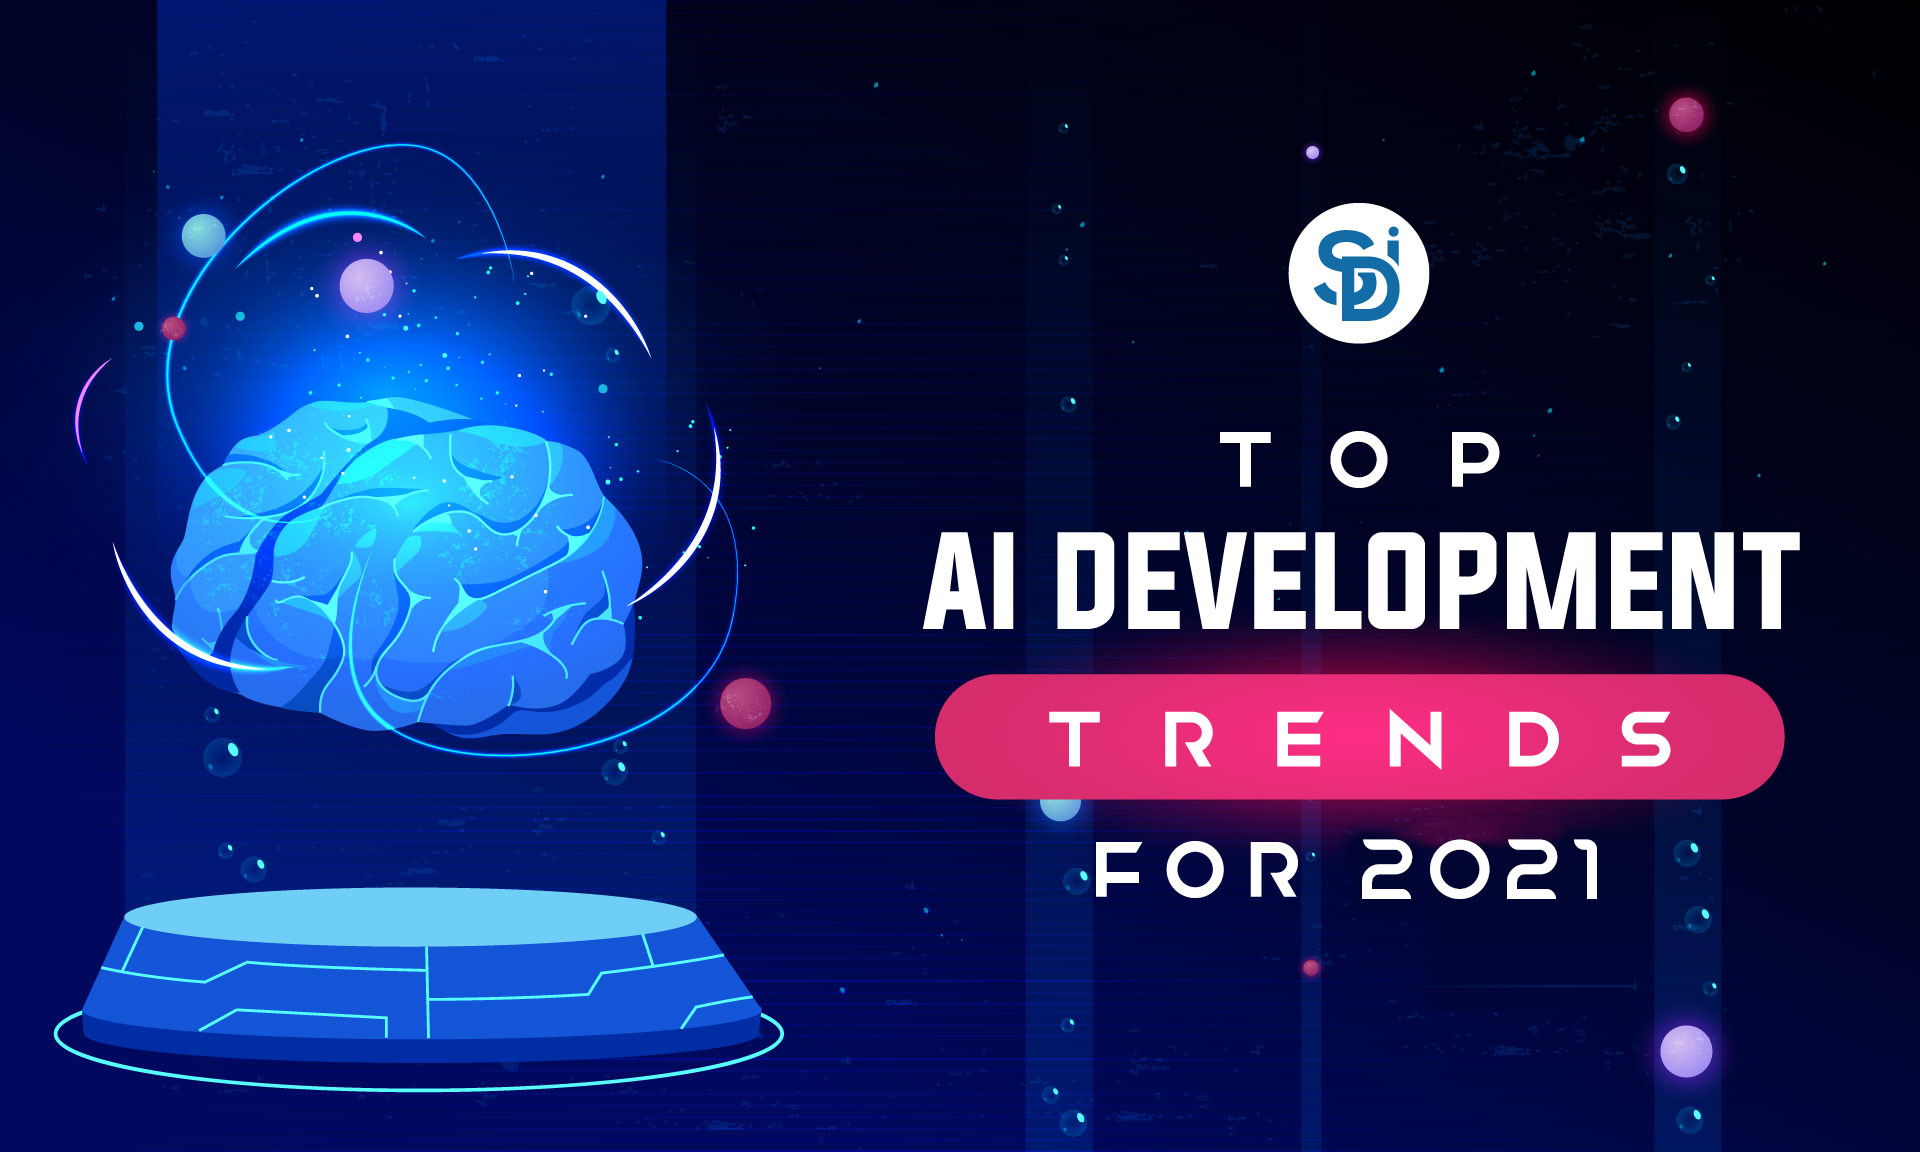 Top AI Development Trends